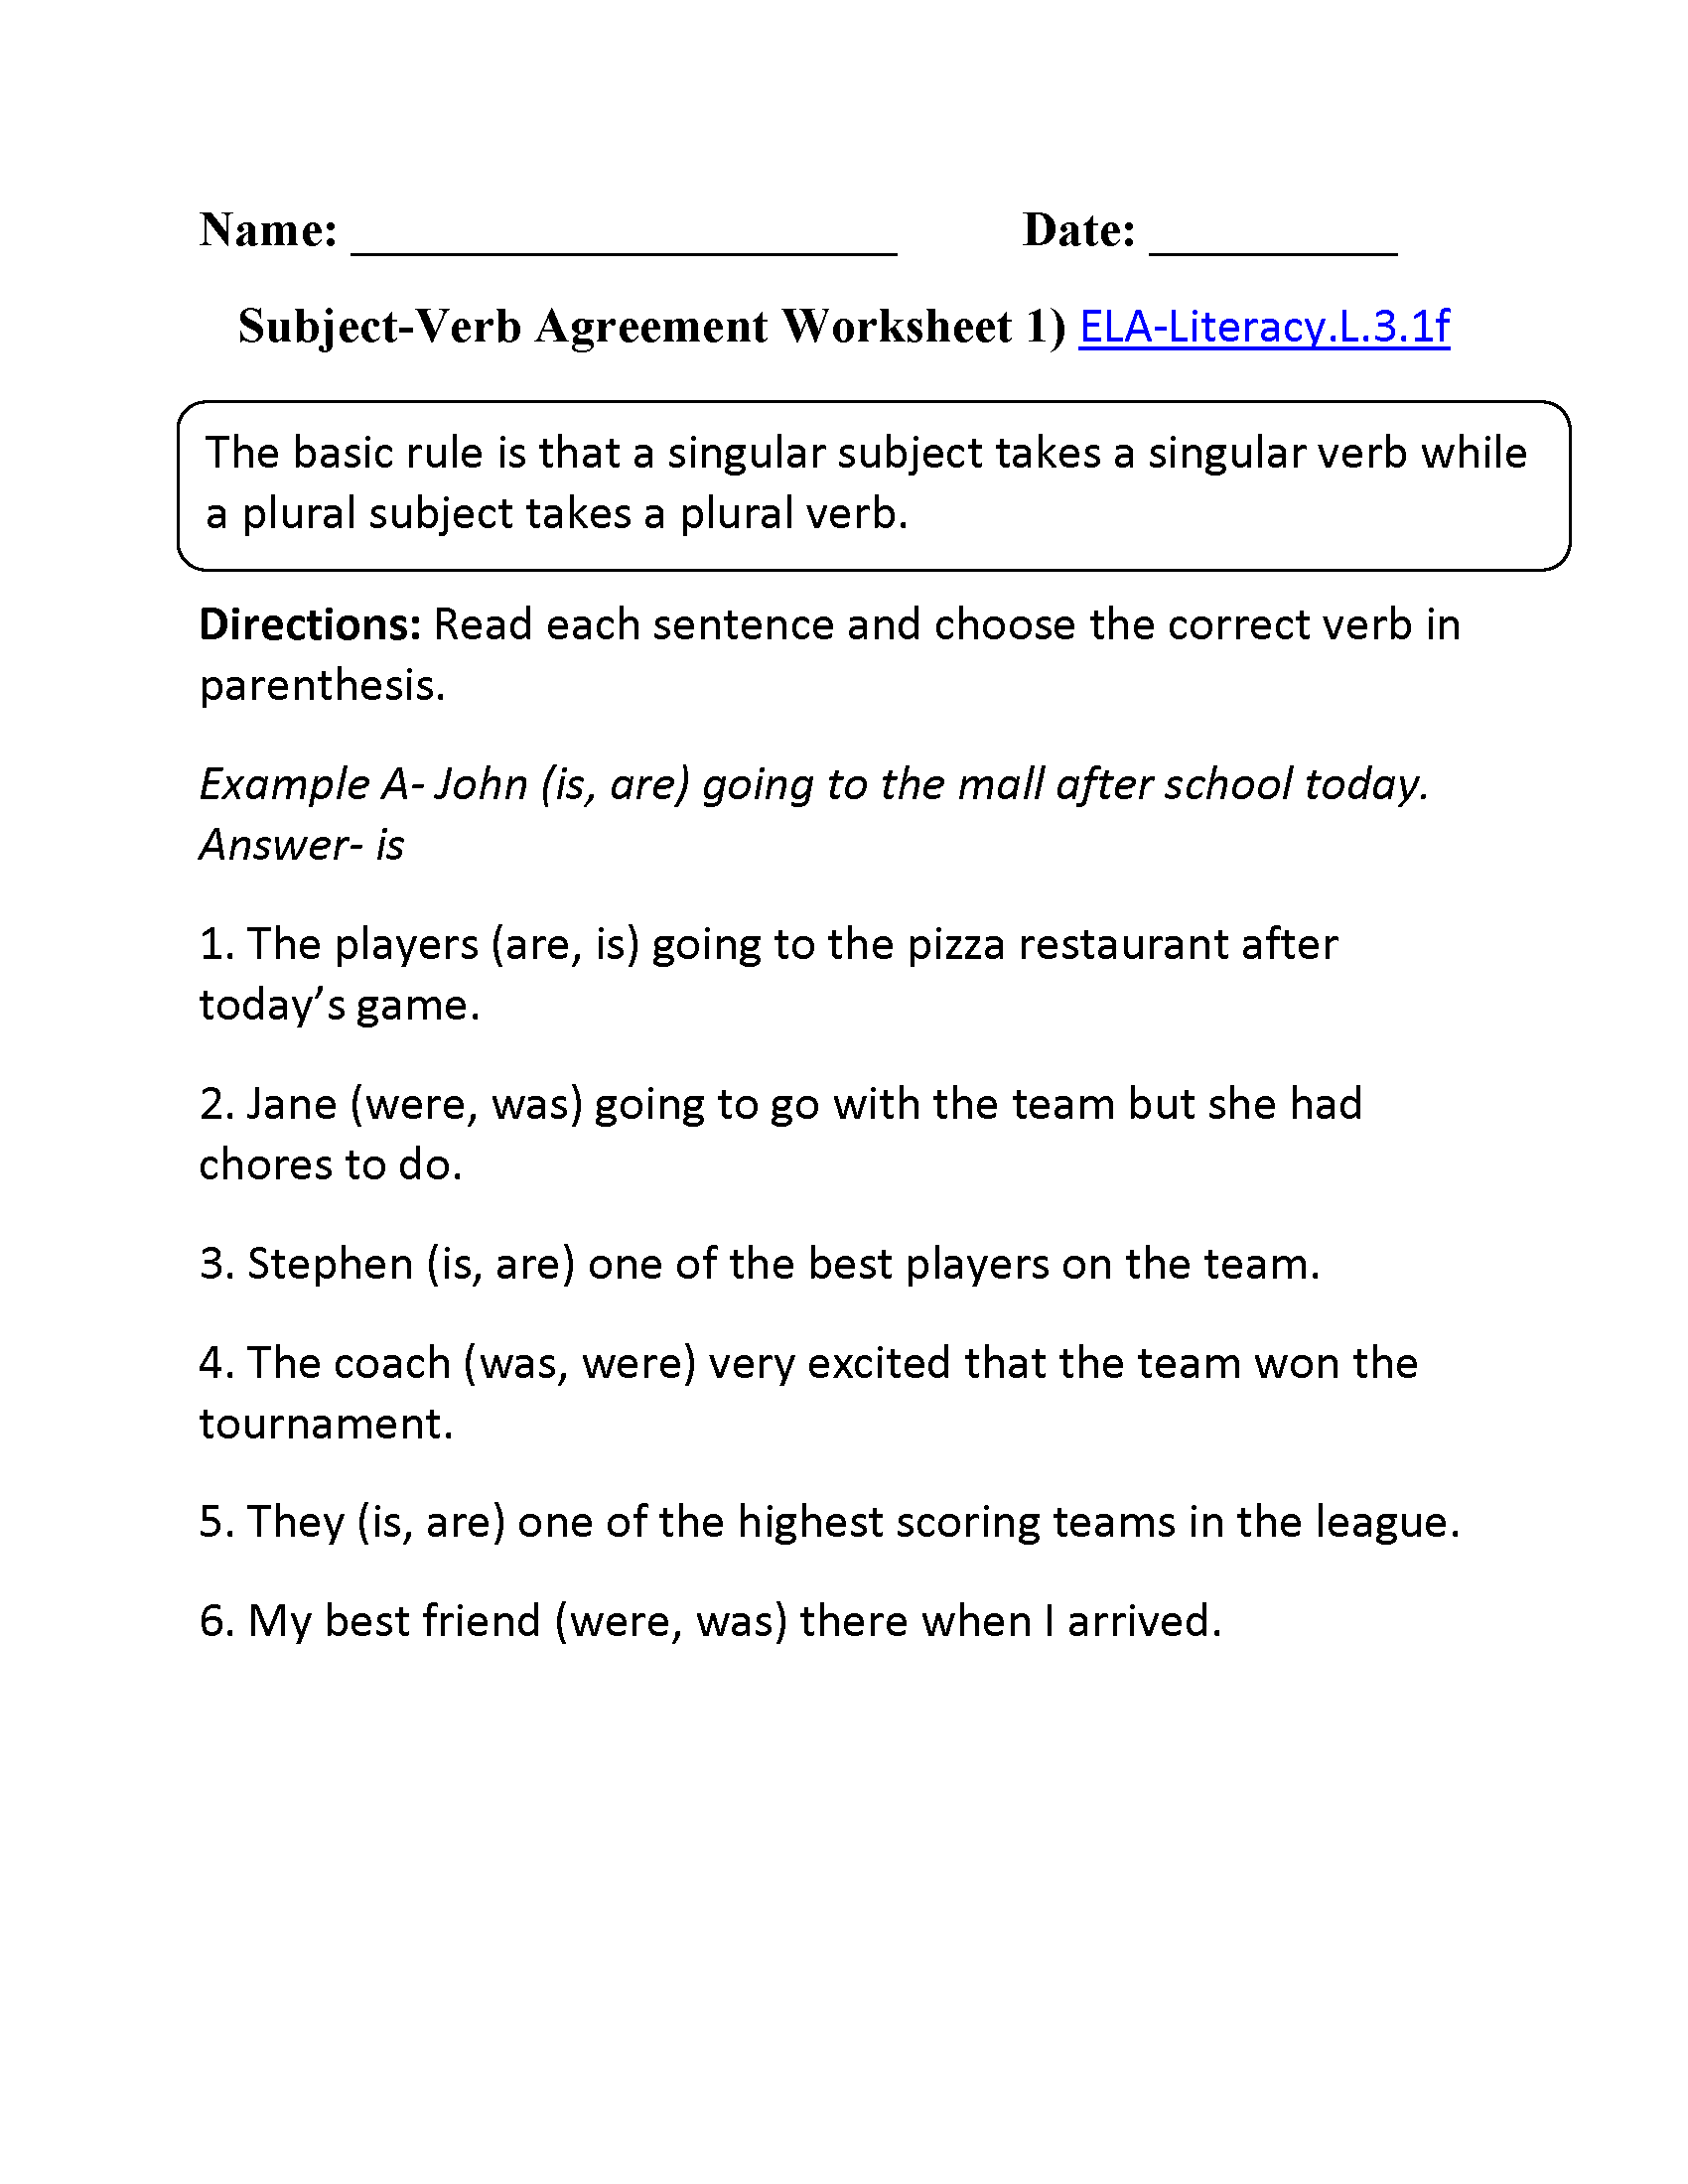 Subject Verb Agreement Worksheet To Be